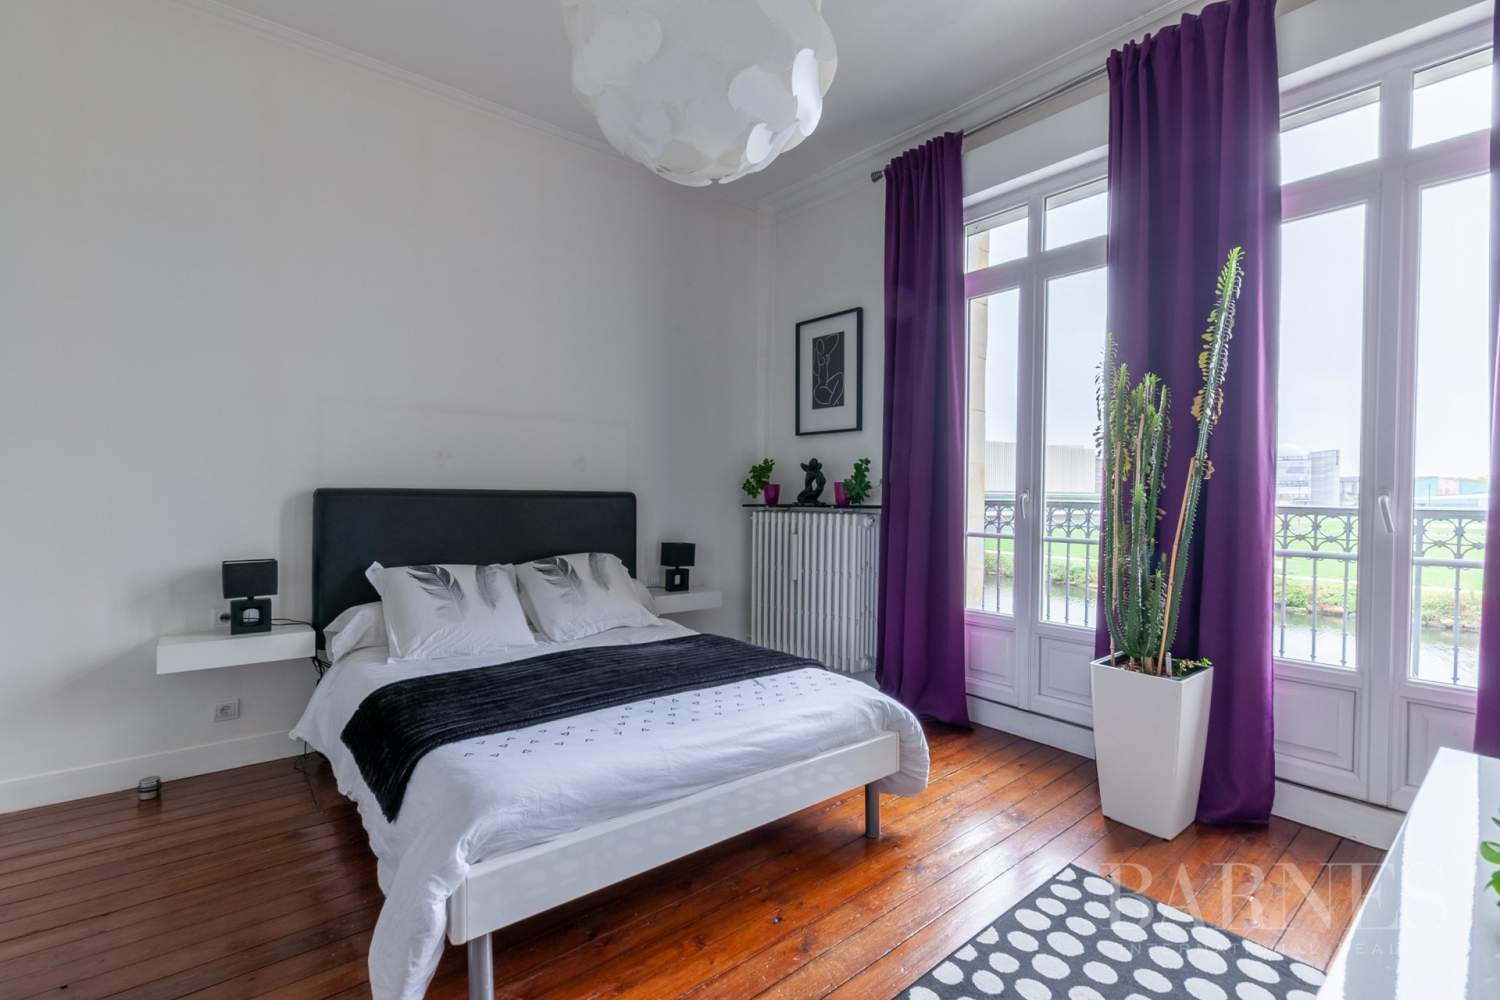 Caen Centre - Fully-renovated 196m² (2,109 sq ft) bourgeois house, 4 bedrooms, with garden and garage picture 9